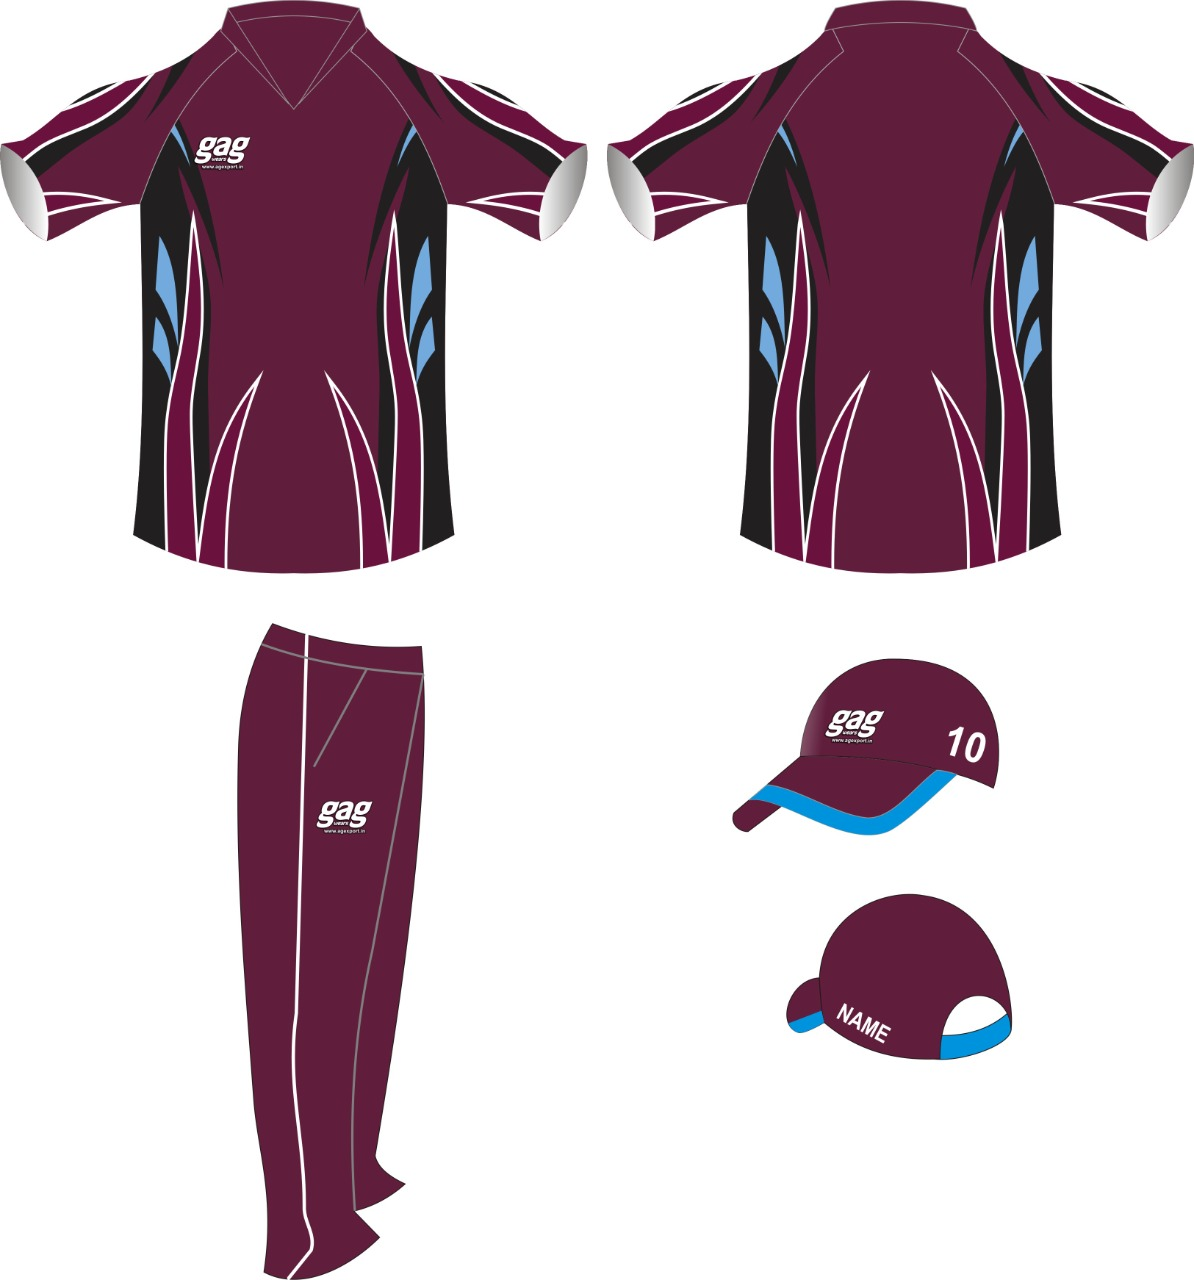 Womens Cricket Uniform Manufacturers in Jalandhar in Australia